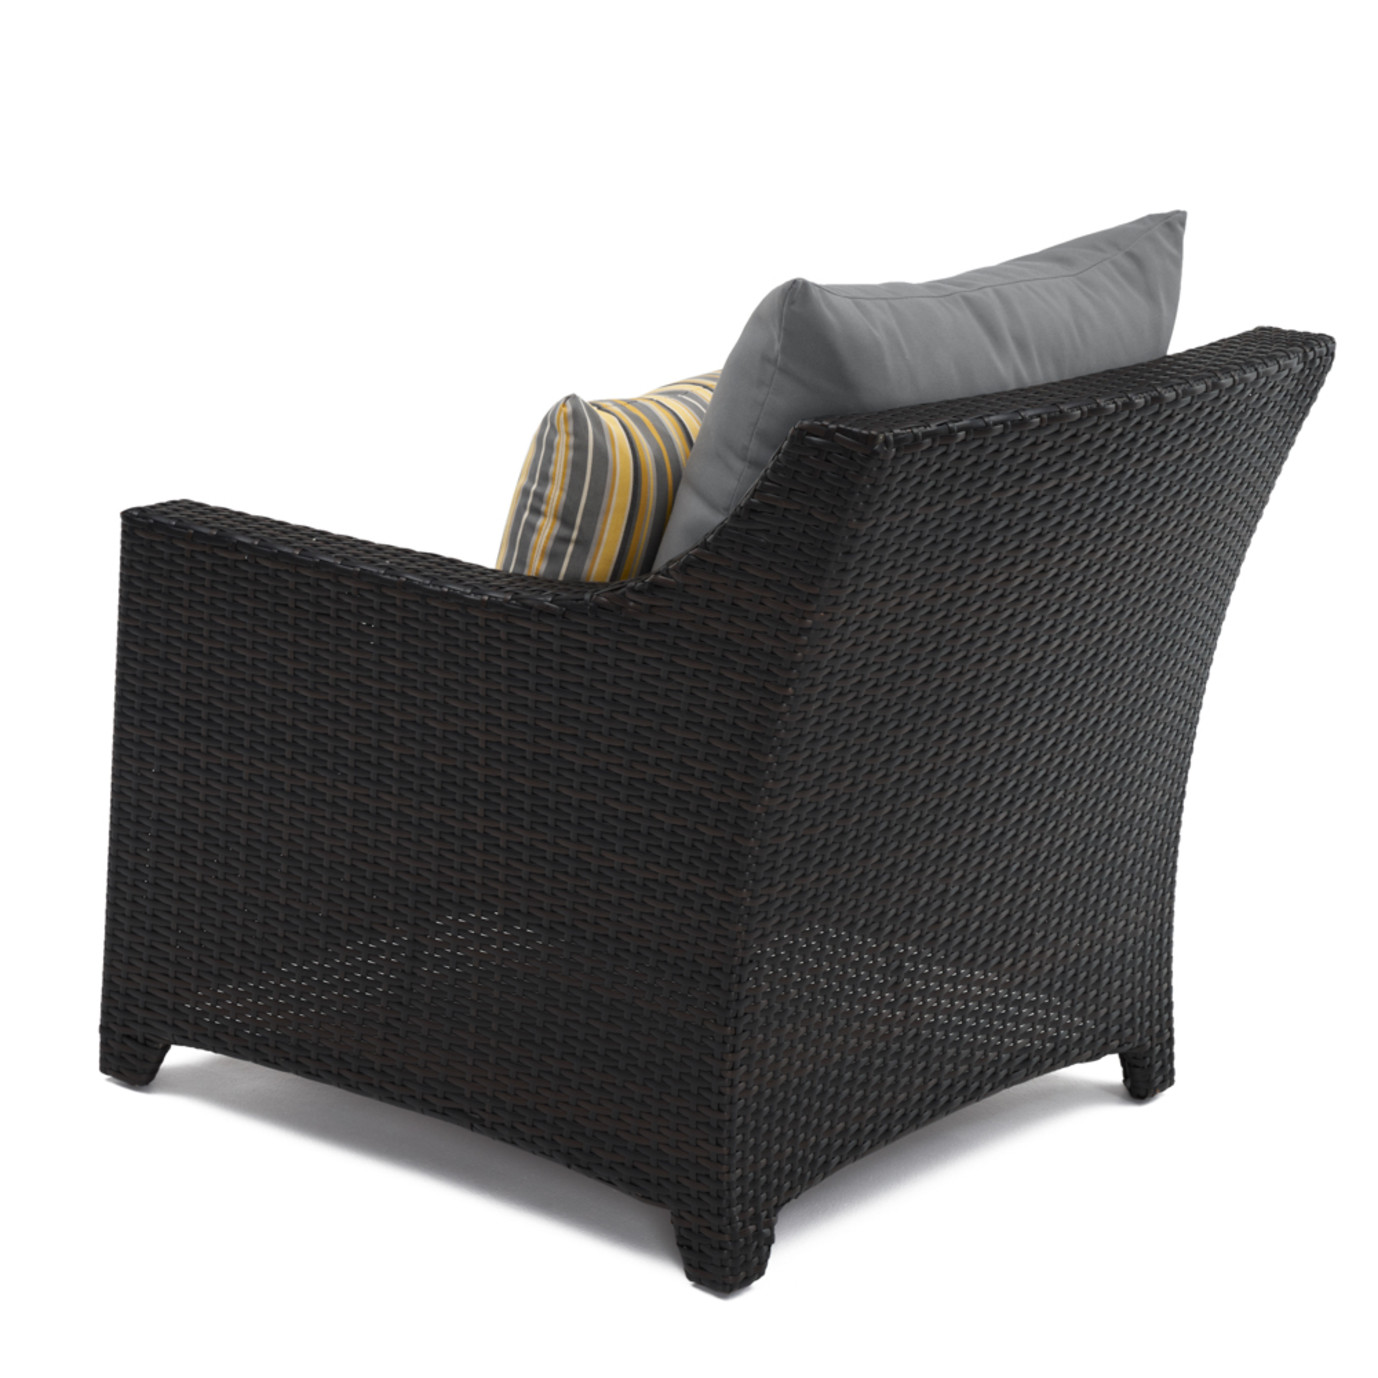 Deco™ Club Chairs - Charcoal Gray